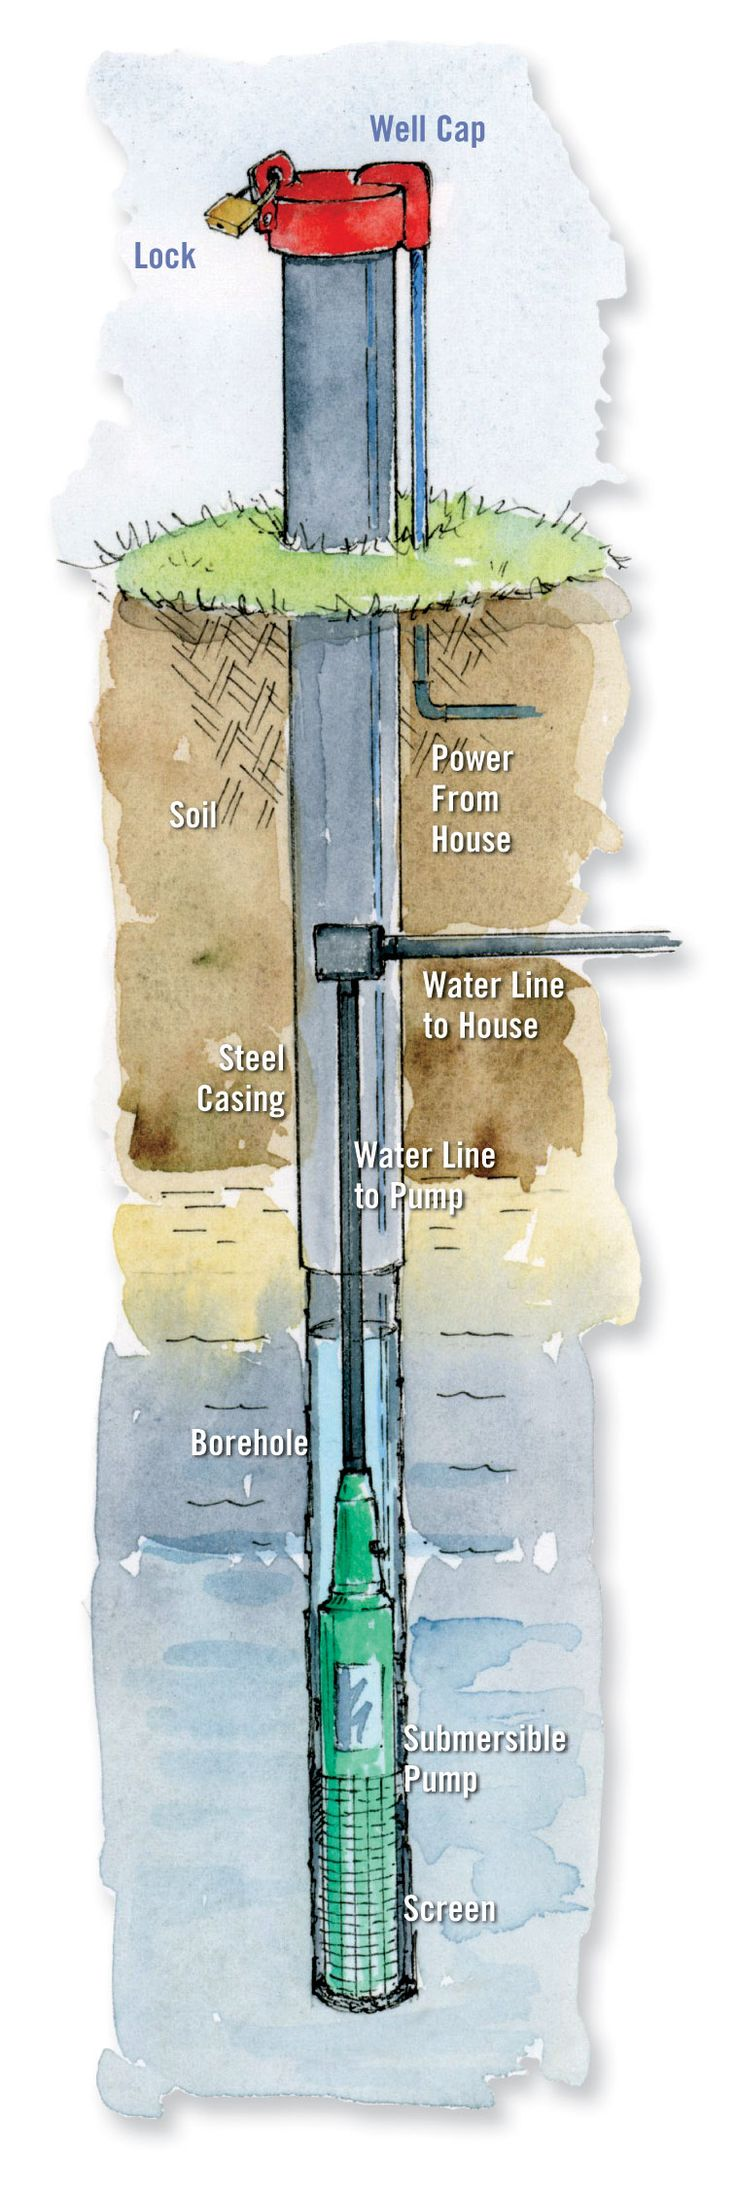 Long and narrow, drilled wells are the only option for getting water out of bedrock. Learn more about well construction and regulations in your area from your local health department. Illustration by Elayne Sears. From MOTHER EARTH NEWS magazine.